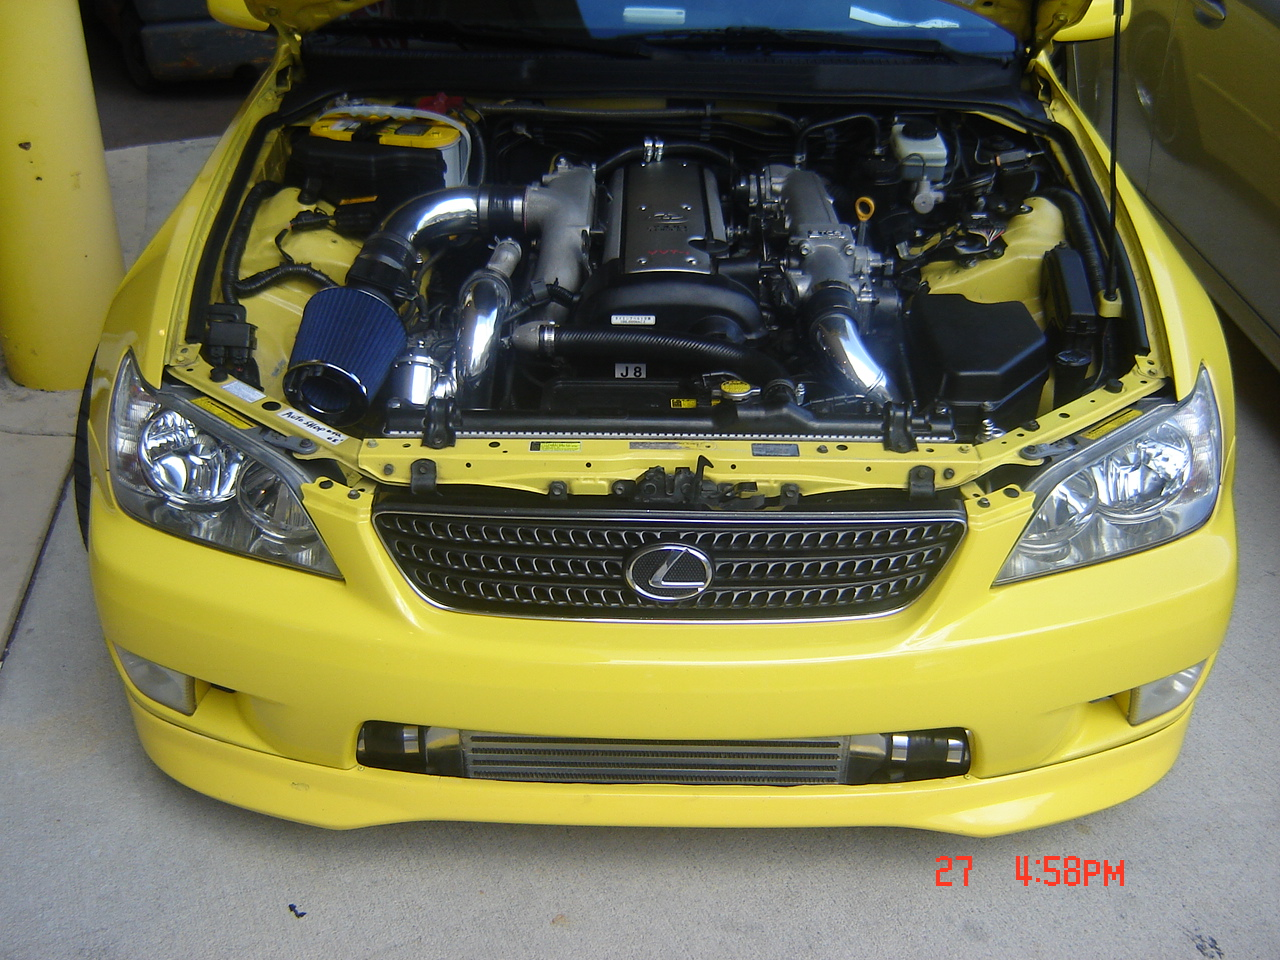 24227d1251822287 1jzgte swap intercooler is300 wiring questions car pics 033 1jzgte swap, intercooler, and is300 wiring questions page 2 03 IS300 Slammed at mr168.co